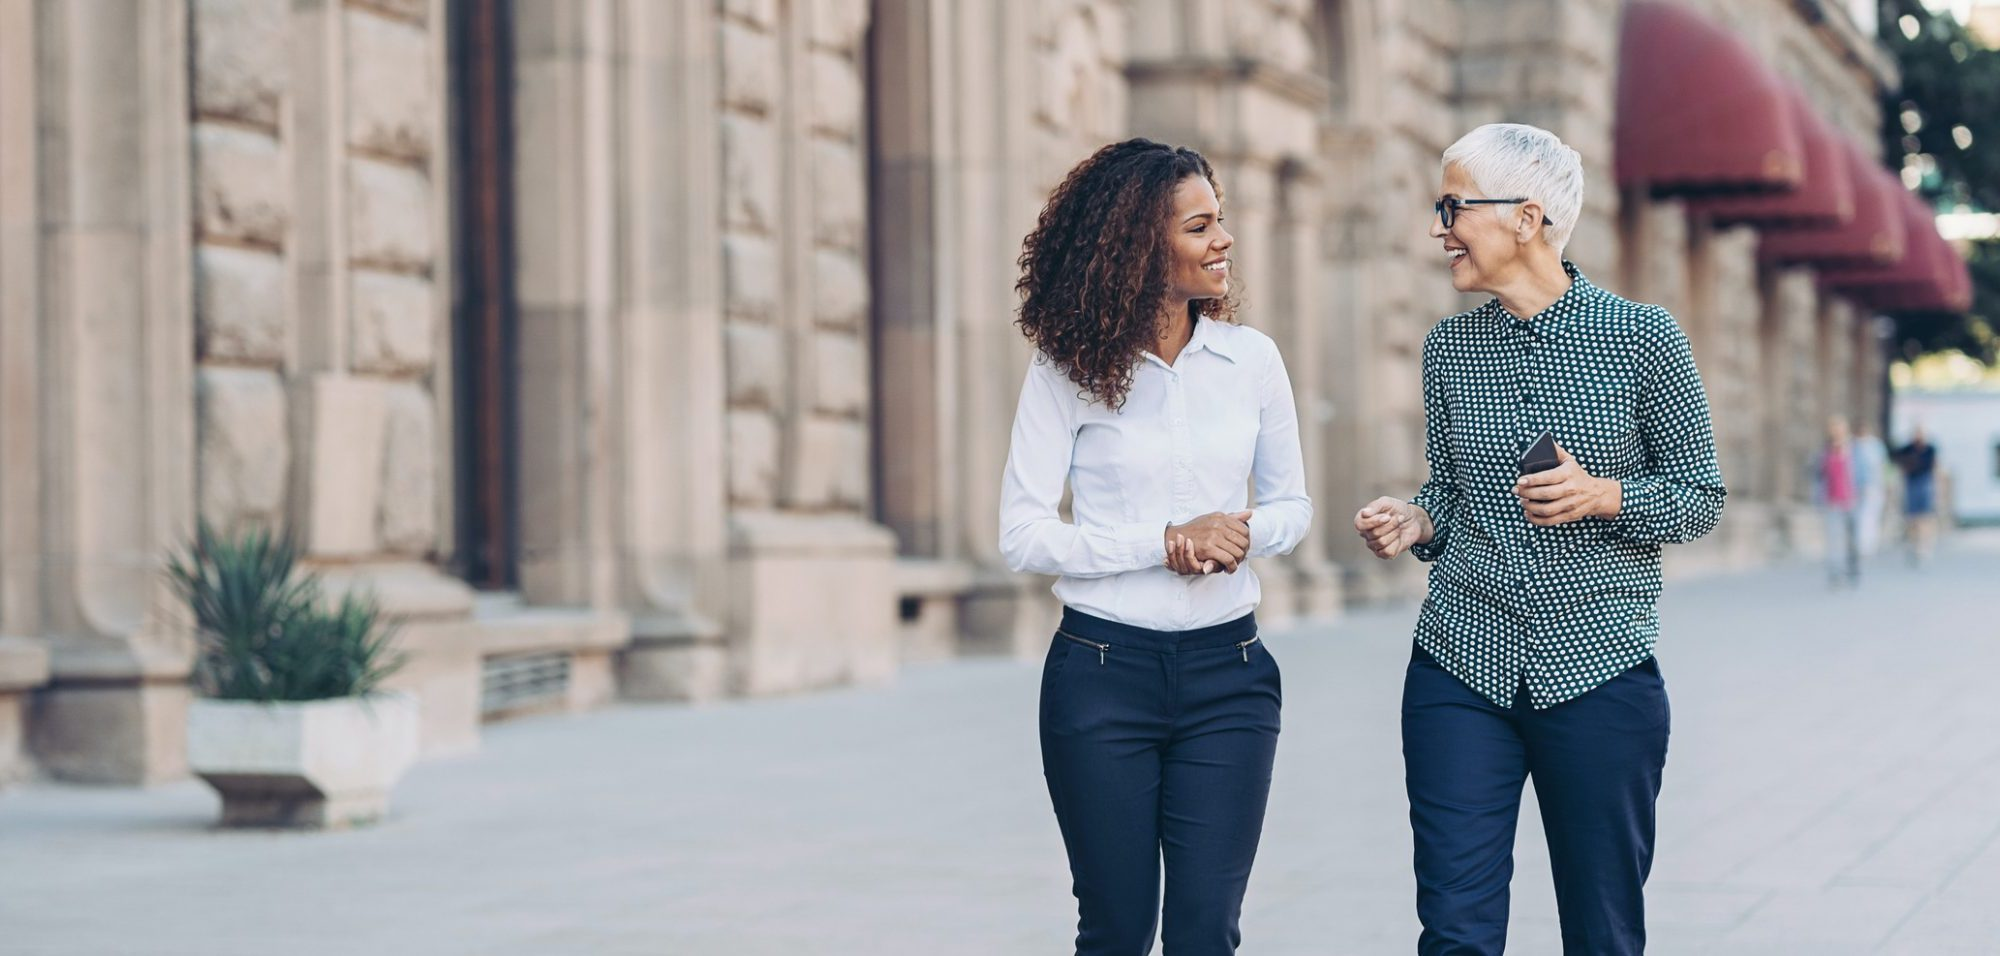 Here are two female business professionals engaged in a conversation and walking outside down a path.